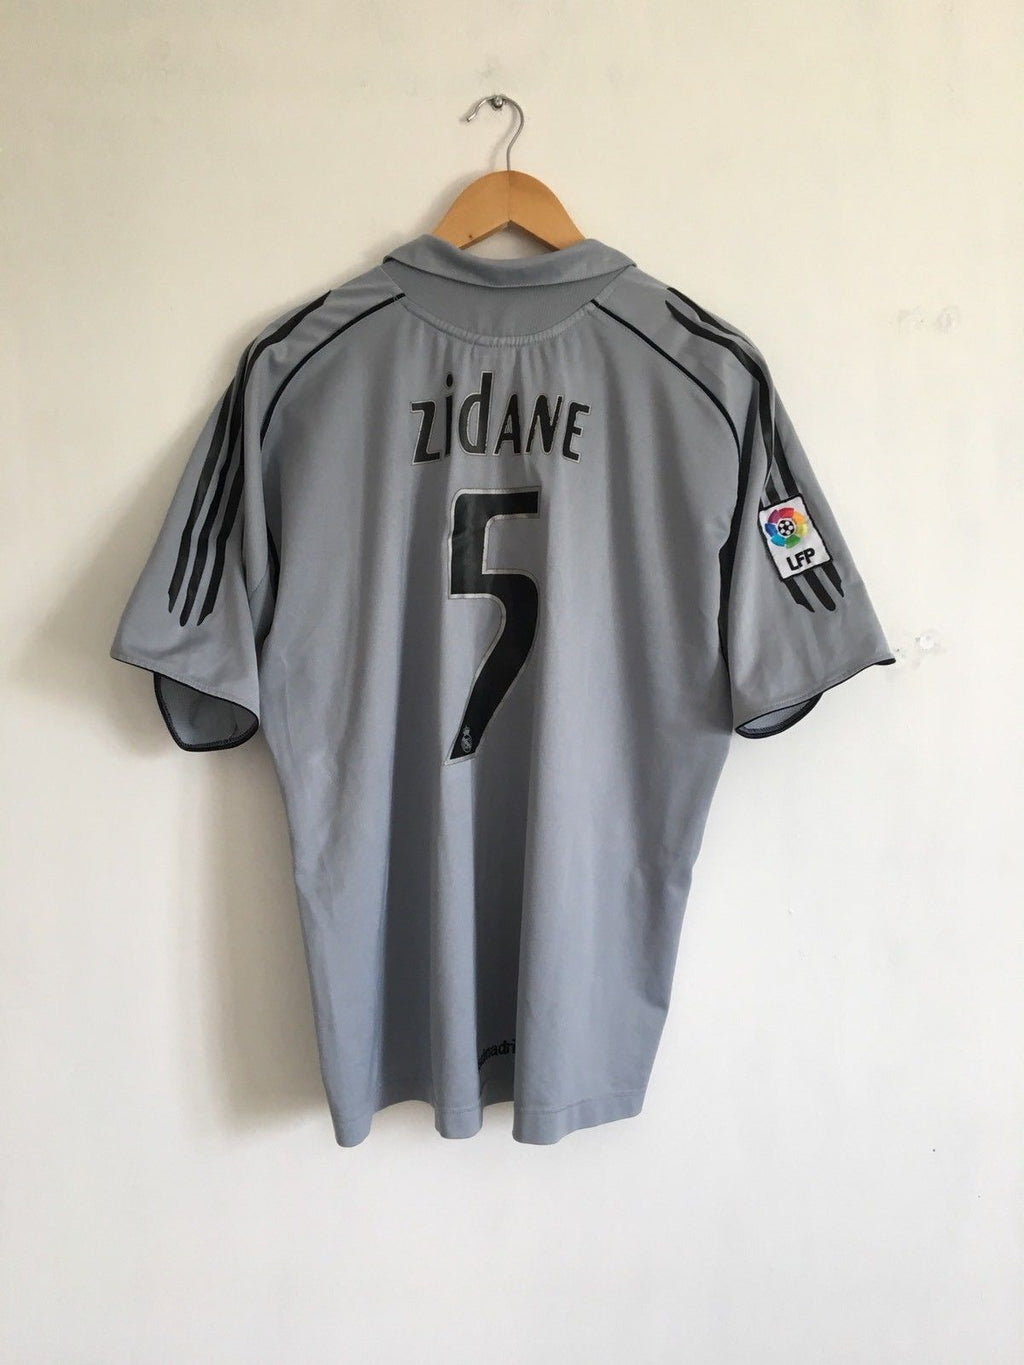 2005/06 Real Madrid Third Shirt Zidane #5 (XL)